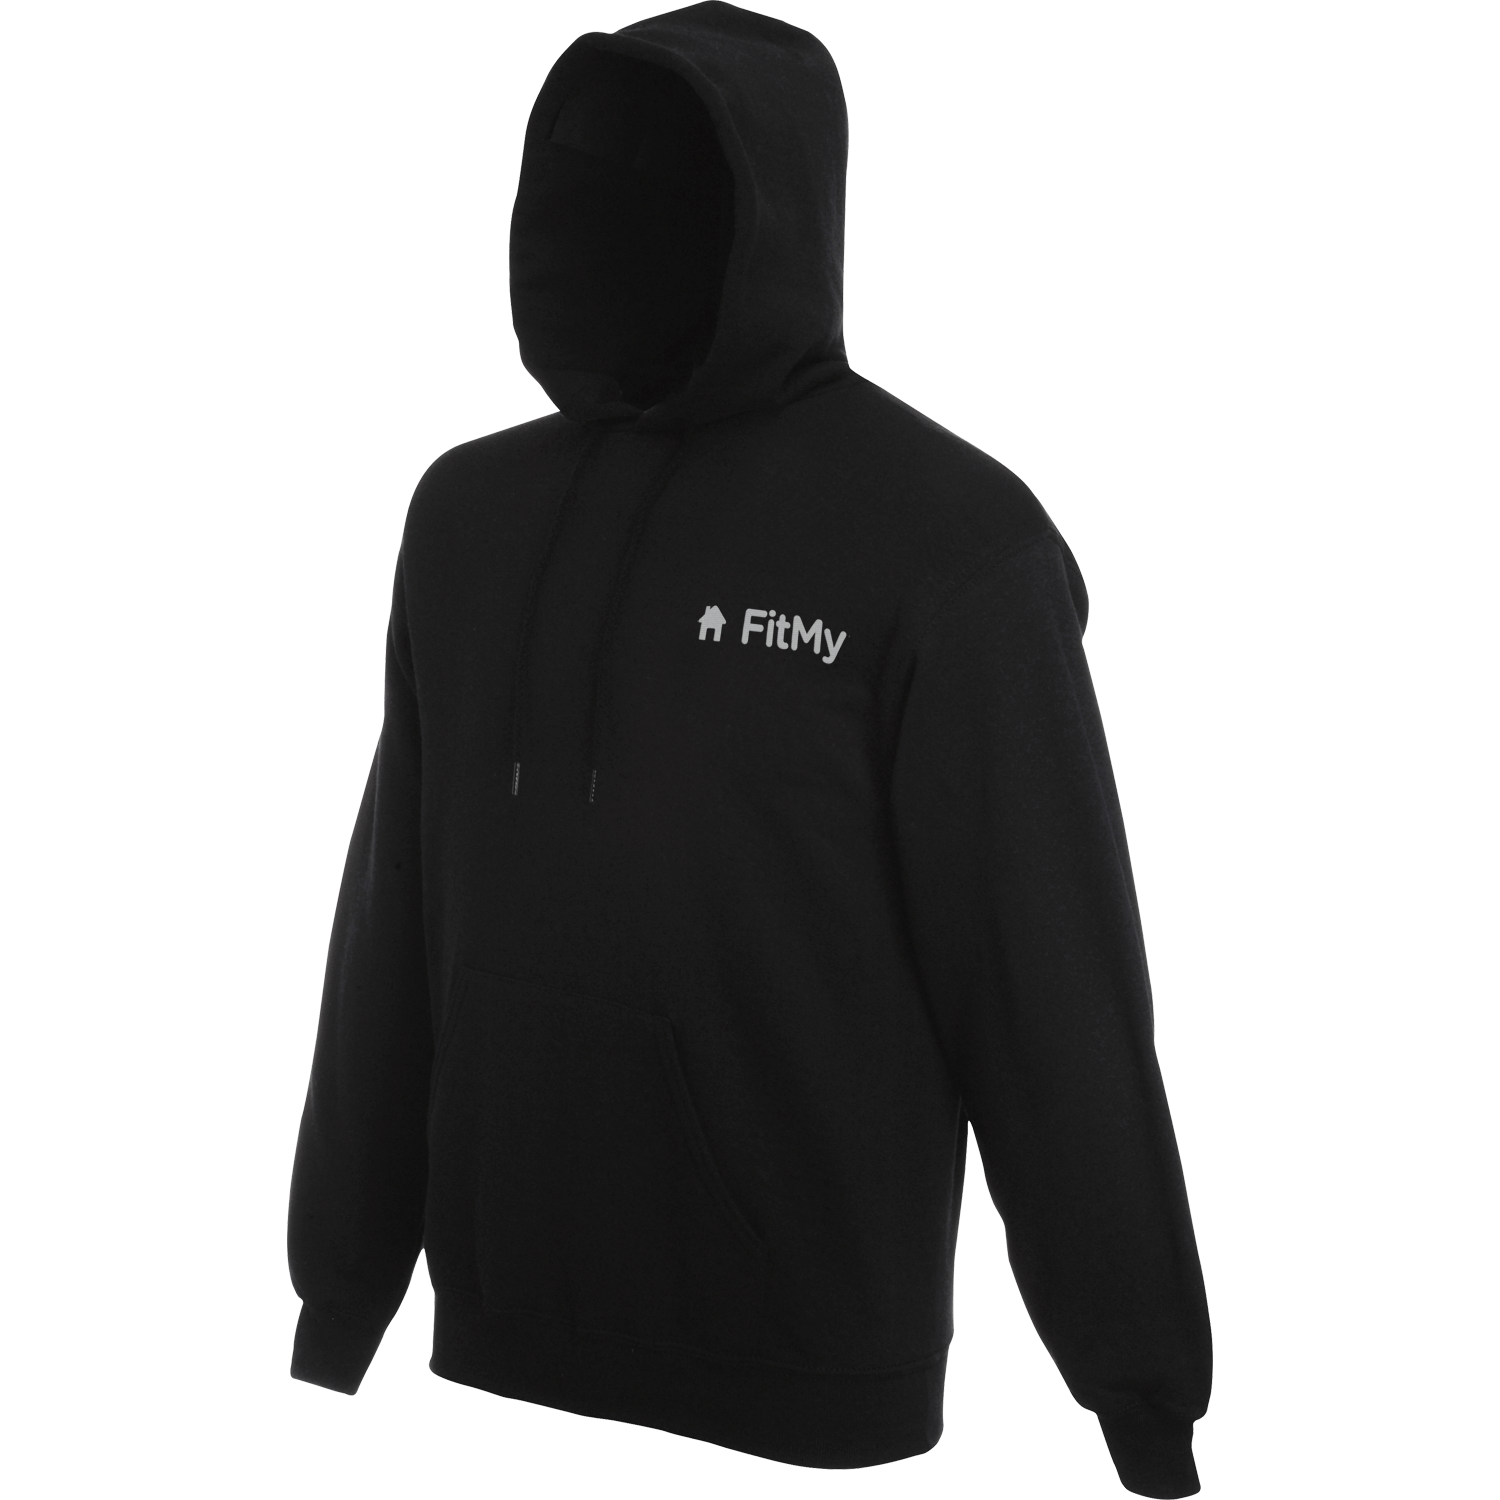 Fruit of the Loom Embroidered Hooded Sweatshirt